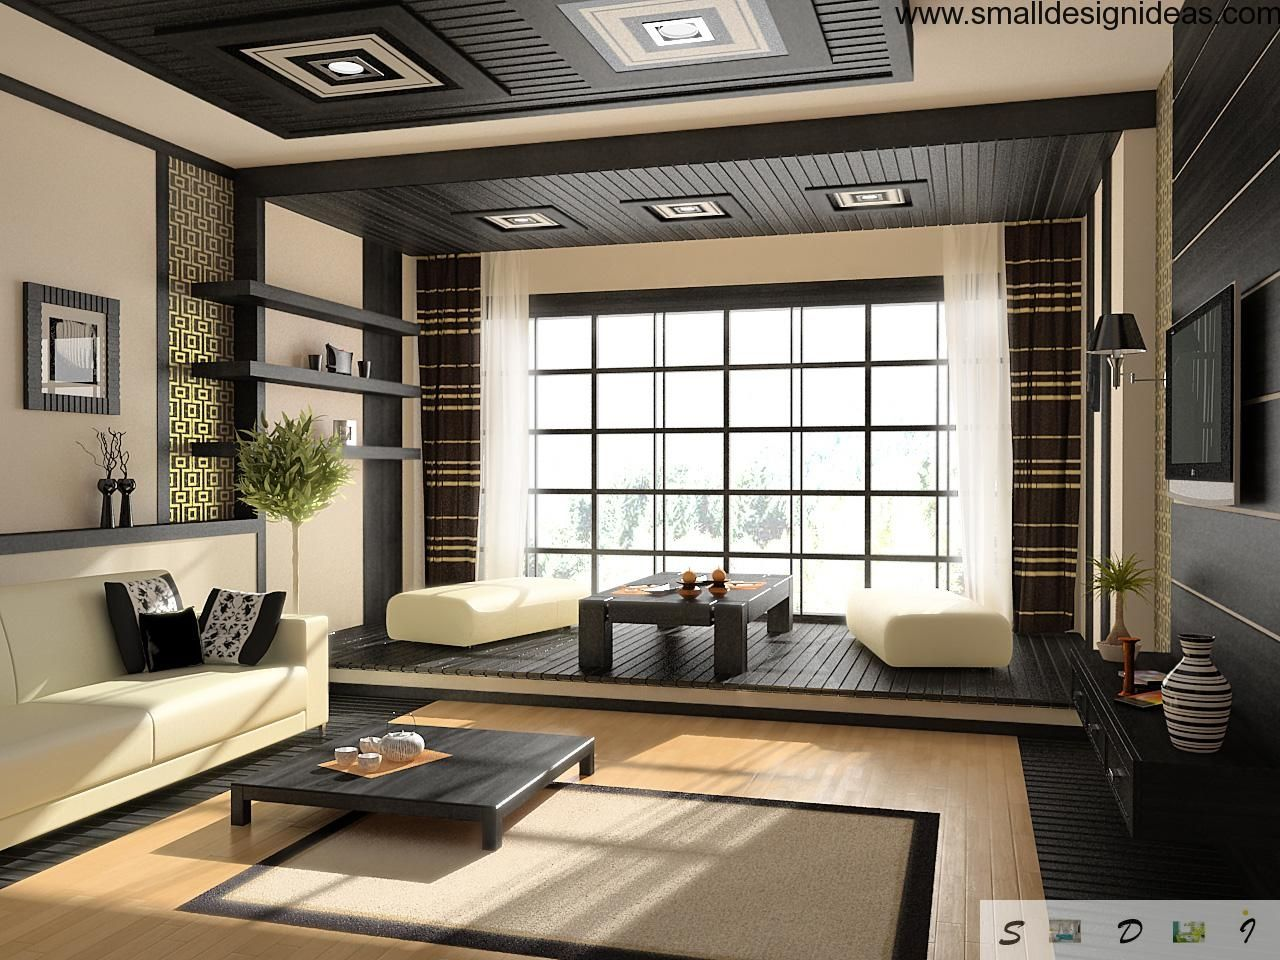 Awesome 22 Asian Interior Decorating Ideas Bringing Japanese Minimalist Style Into  Modern Homes